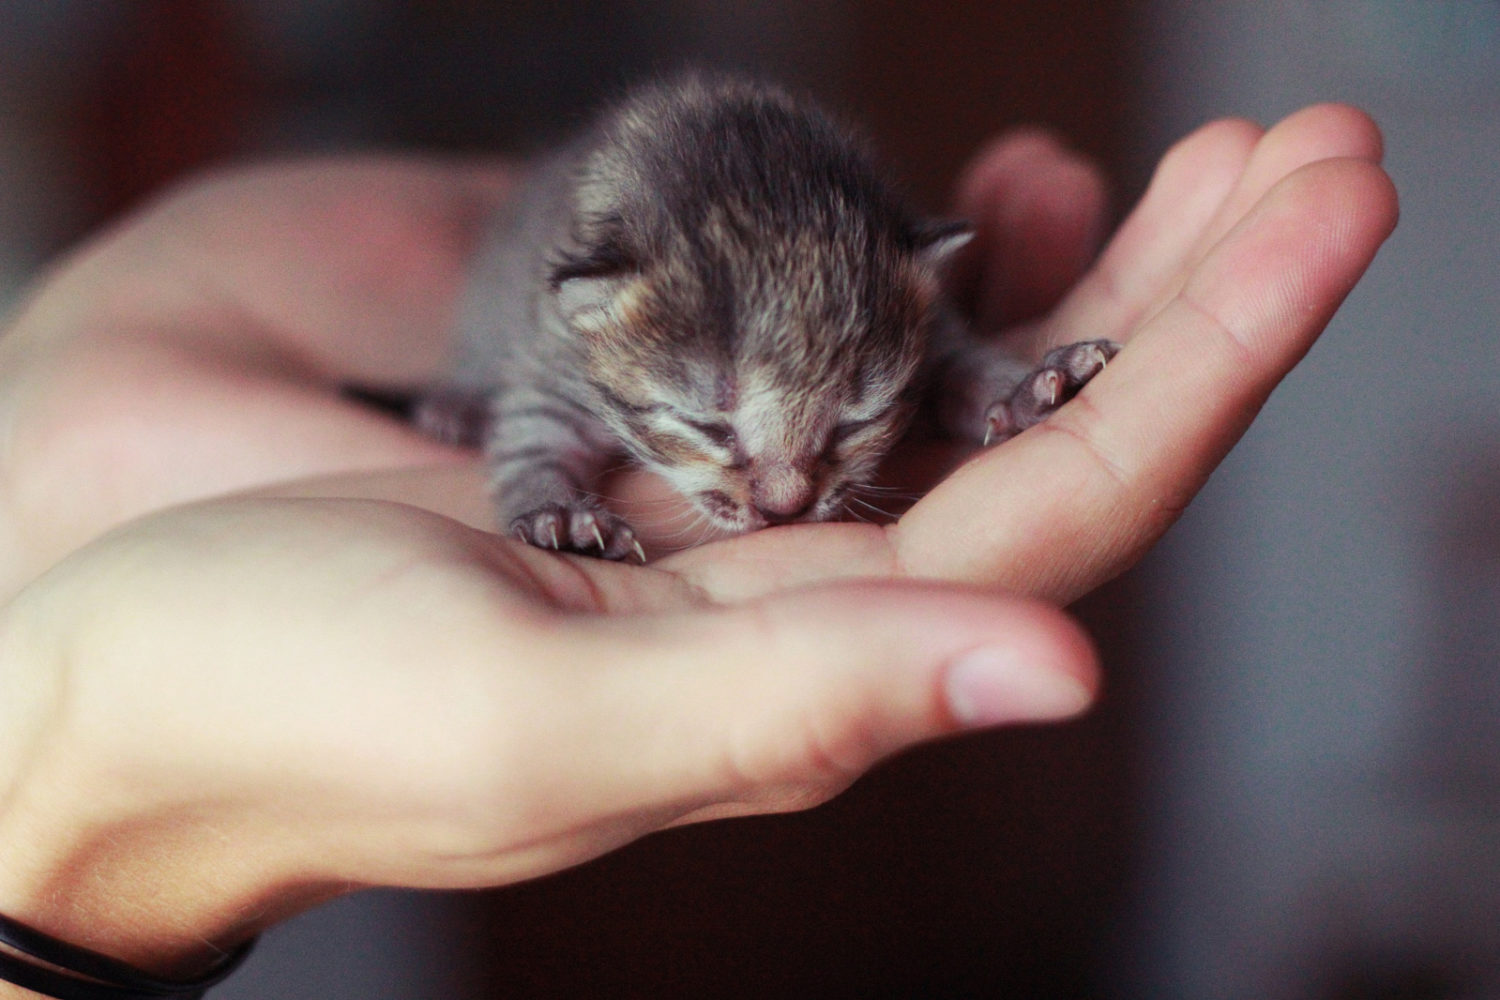 21 Purrfect Photos of Tiny Kittens That Fit In Your Palm